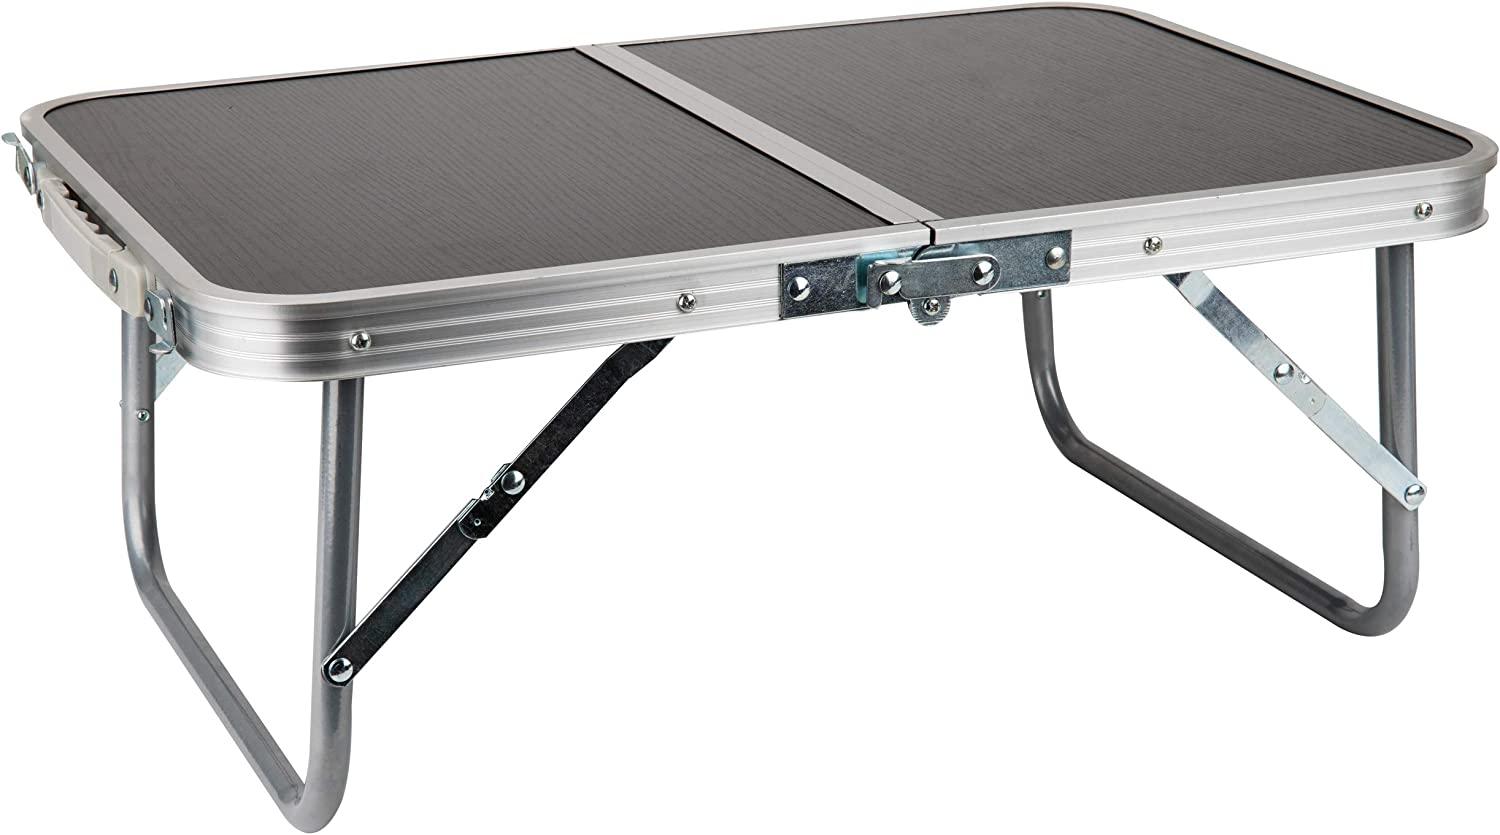 SALENEW very popular! Omaha Mall Mind Reader Folding Lap Tray Bed with Collapsibl Breakfast Desk